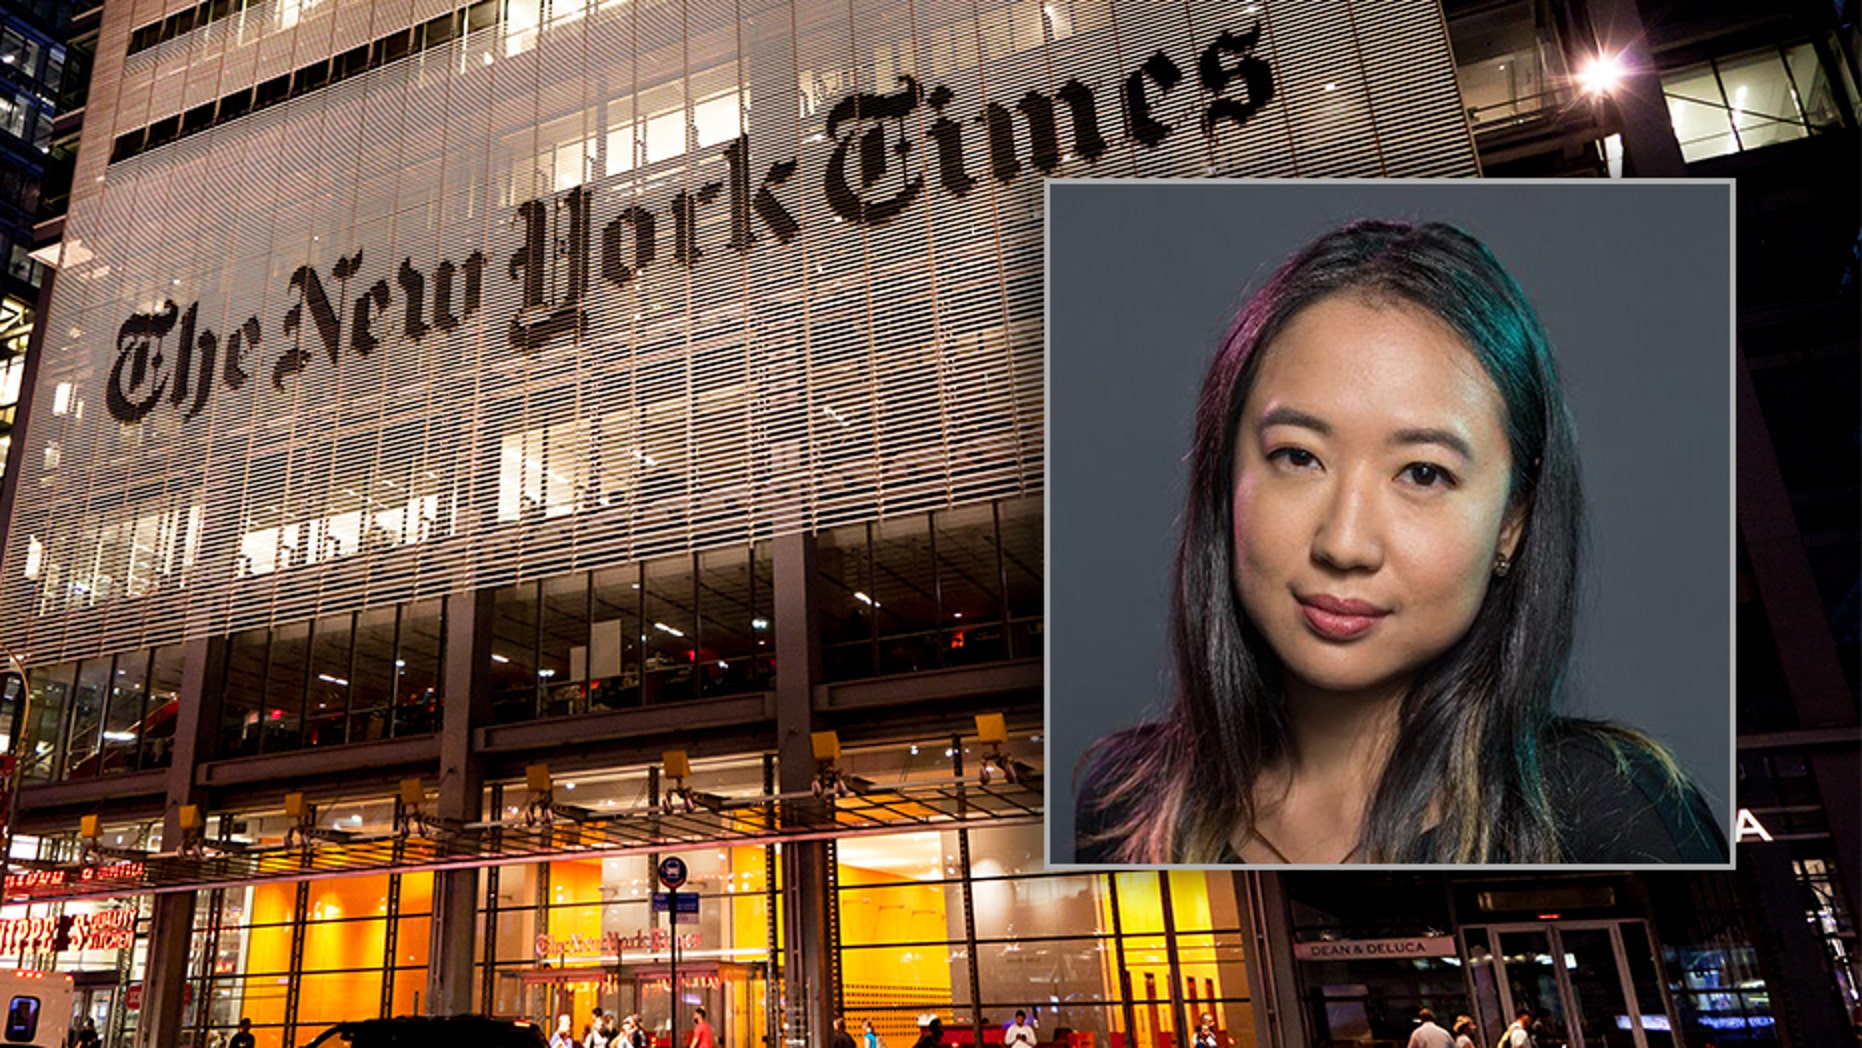 Social media reactions flared on Wednesday with images of racist tweets sent from an unverified Twitter account that looked to belong to Sarah Jeong. The tweets surfaced shortly after The Times announced she was joining the paper.